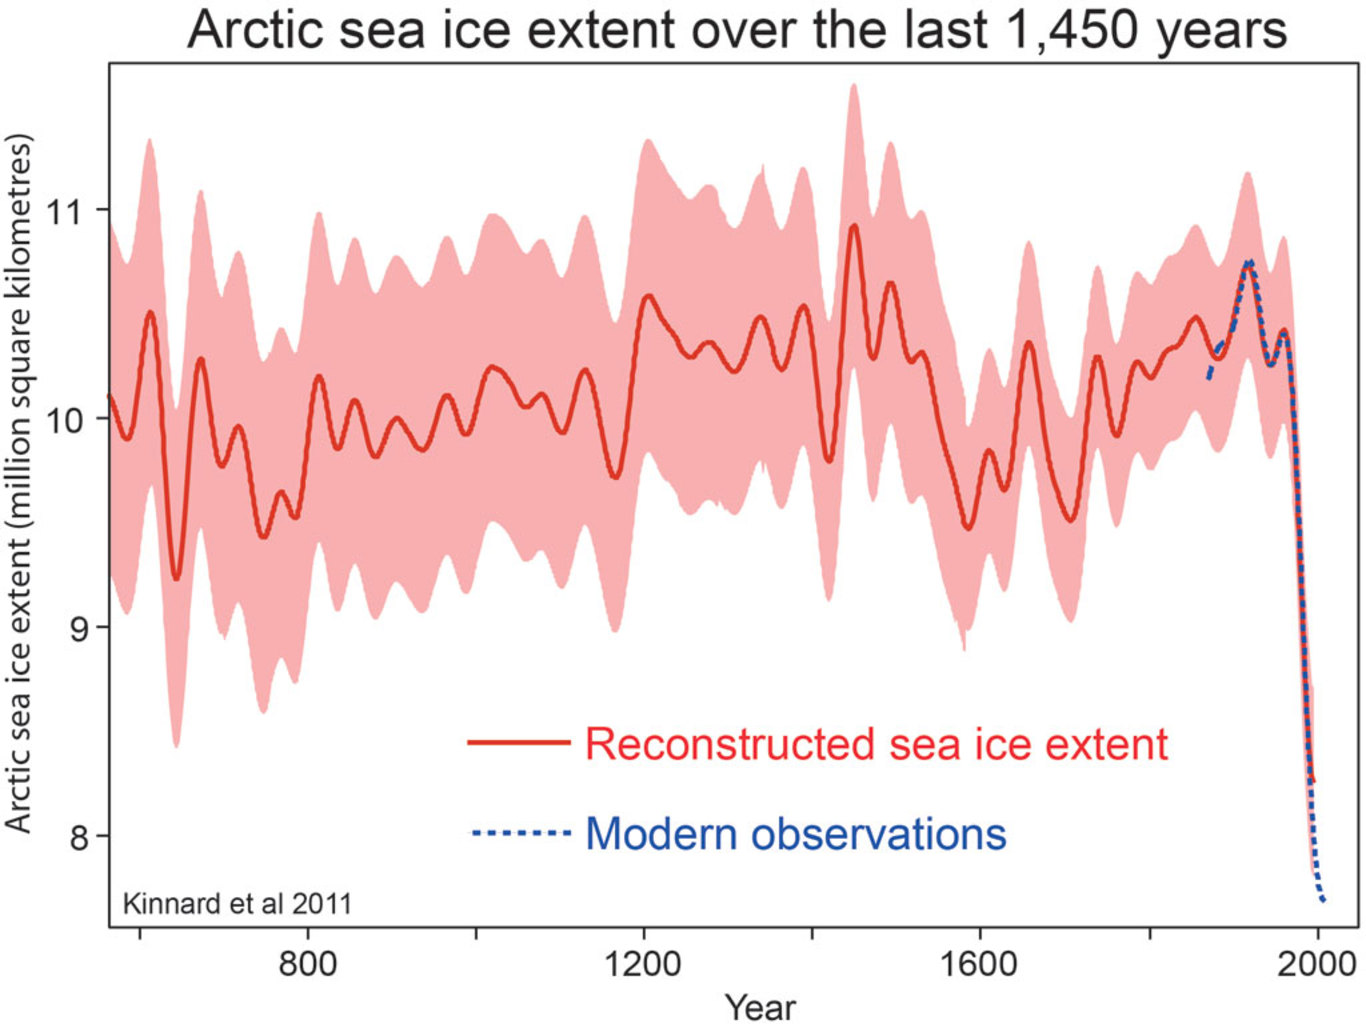 Arctic sea ice extent over the last 1,450 years